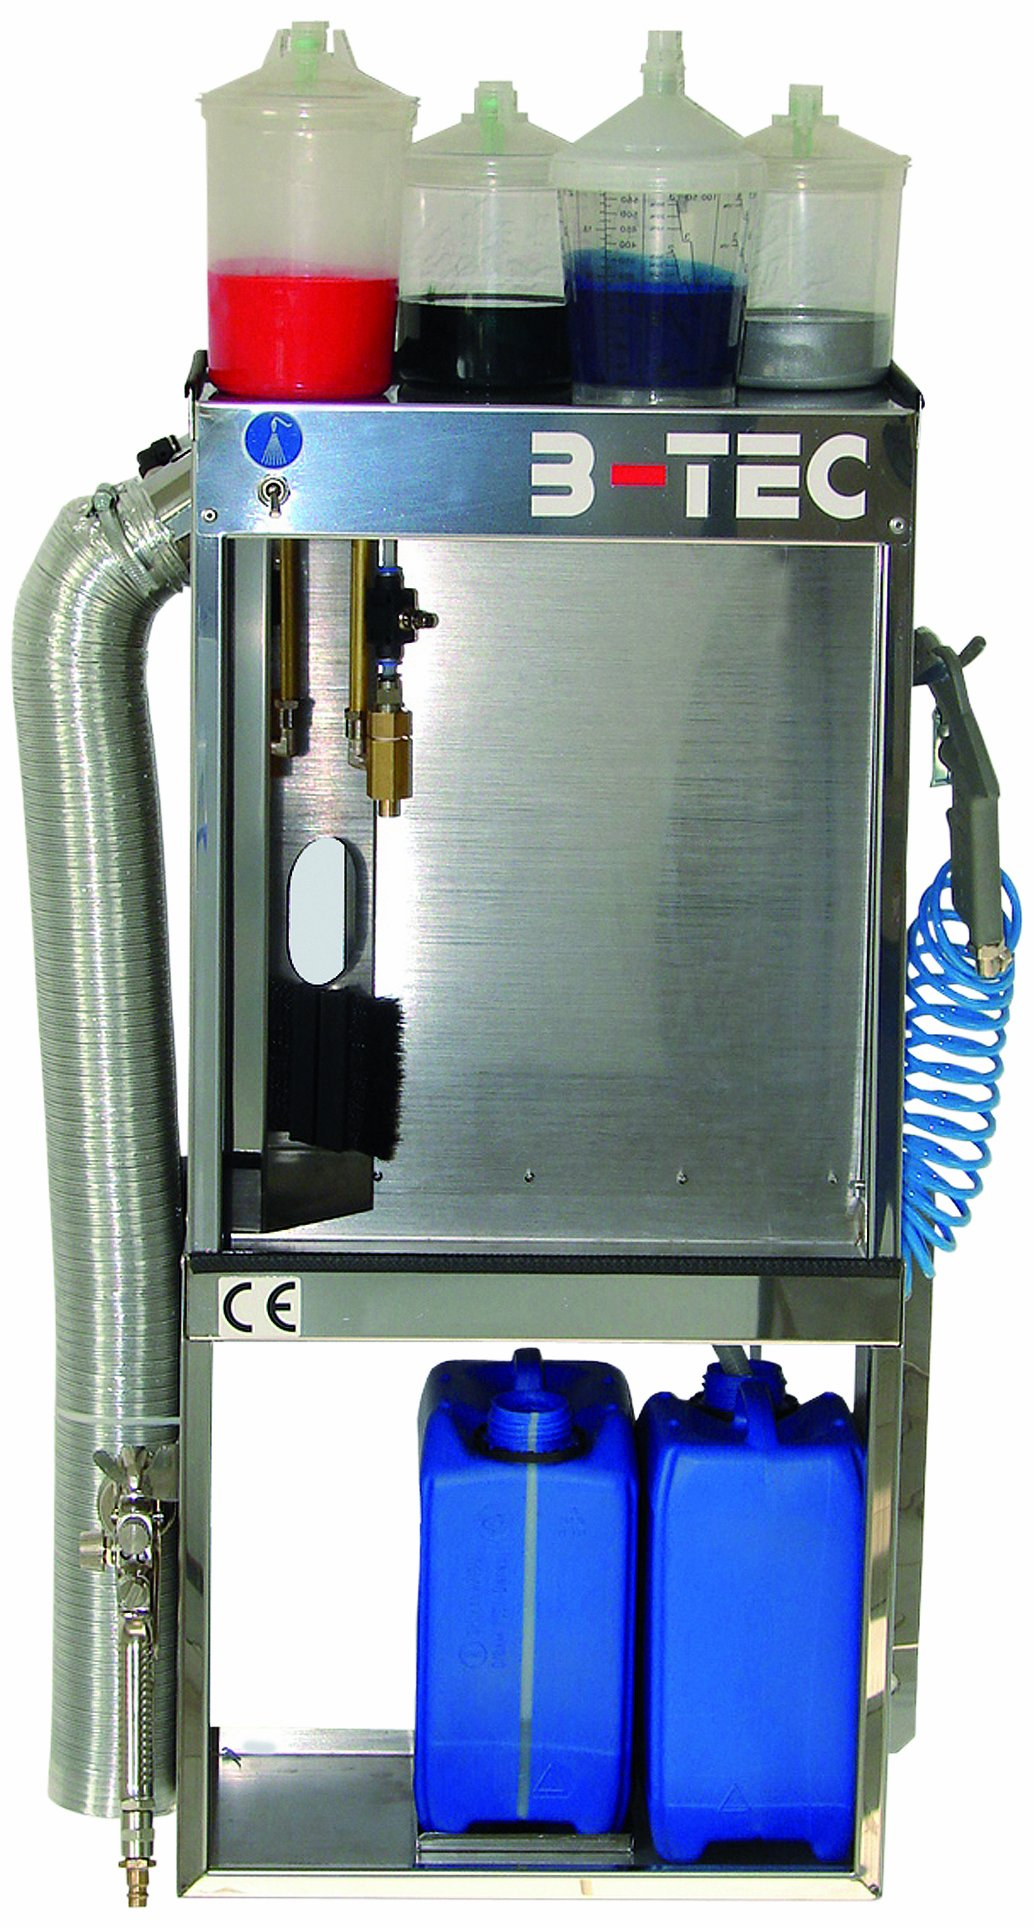 B-TEC Systems SB-400 Stainless Steel Changeover Manual Cleaning Station Speedbox for Disposable Cup System, 20'' Width x 9'' Depth x 30'' Height,for Solvent or Water